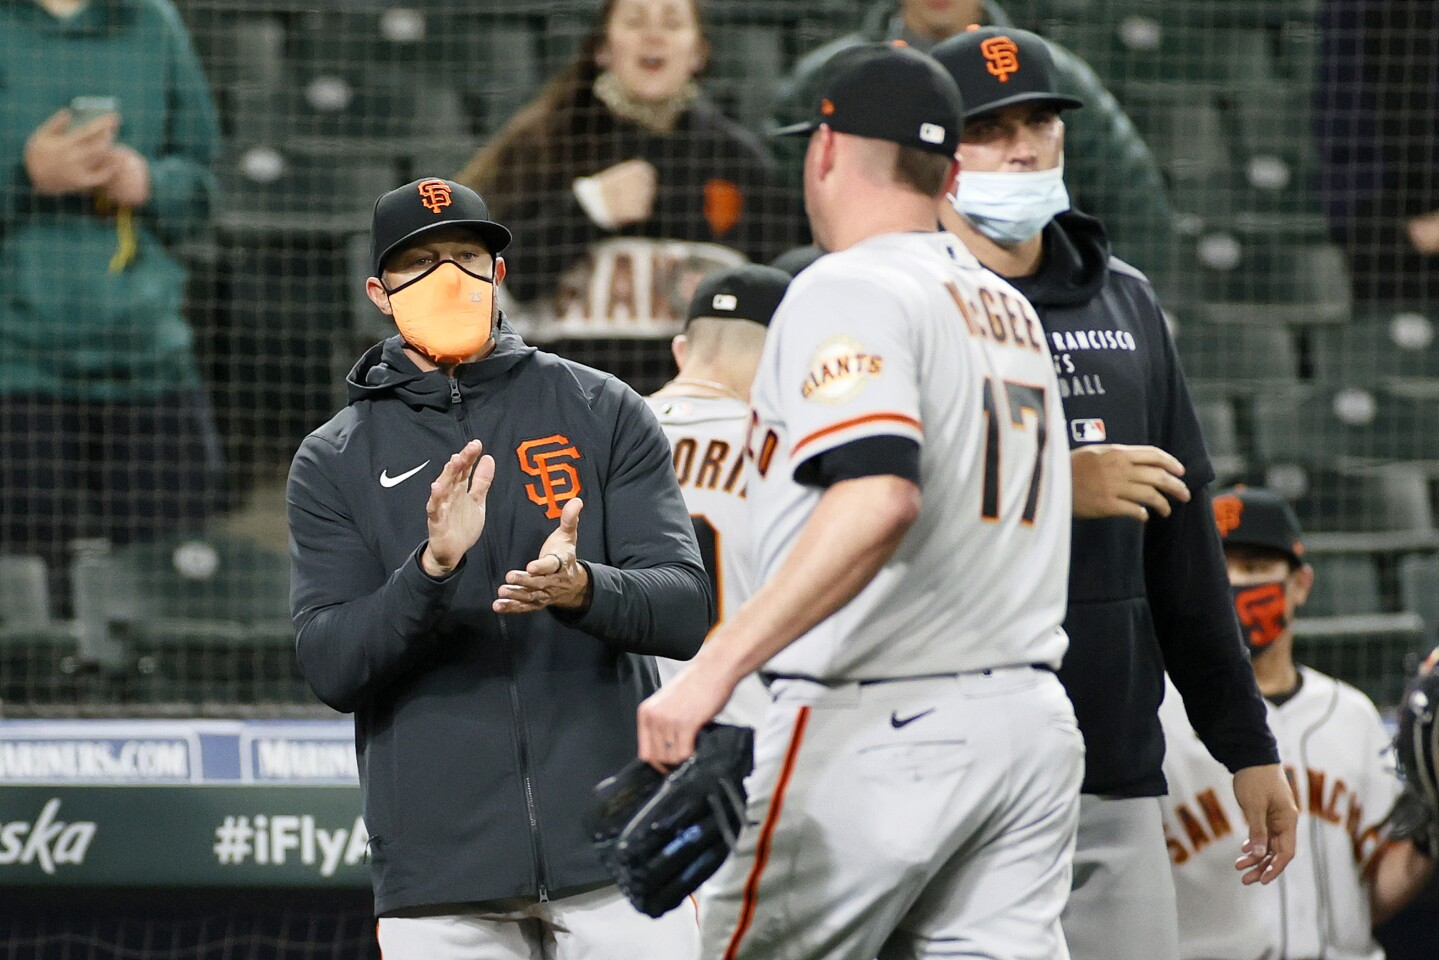 SEATTLE, WASHINGTON - APRIL 02: Manager Gabe Kapler of the San Francisco Giants reacts after defeating the Seattle Mariners 6-3 at T-Mobile Park on April 02, 2021 in Seattle, Washington. (Photo by Steph Chambers/Getty Images)